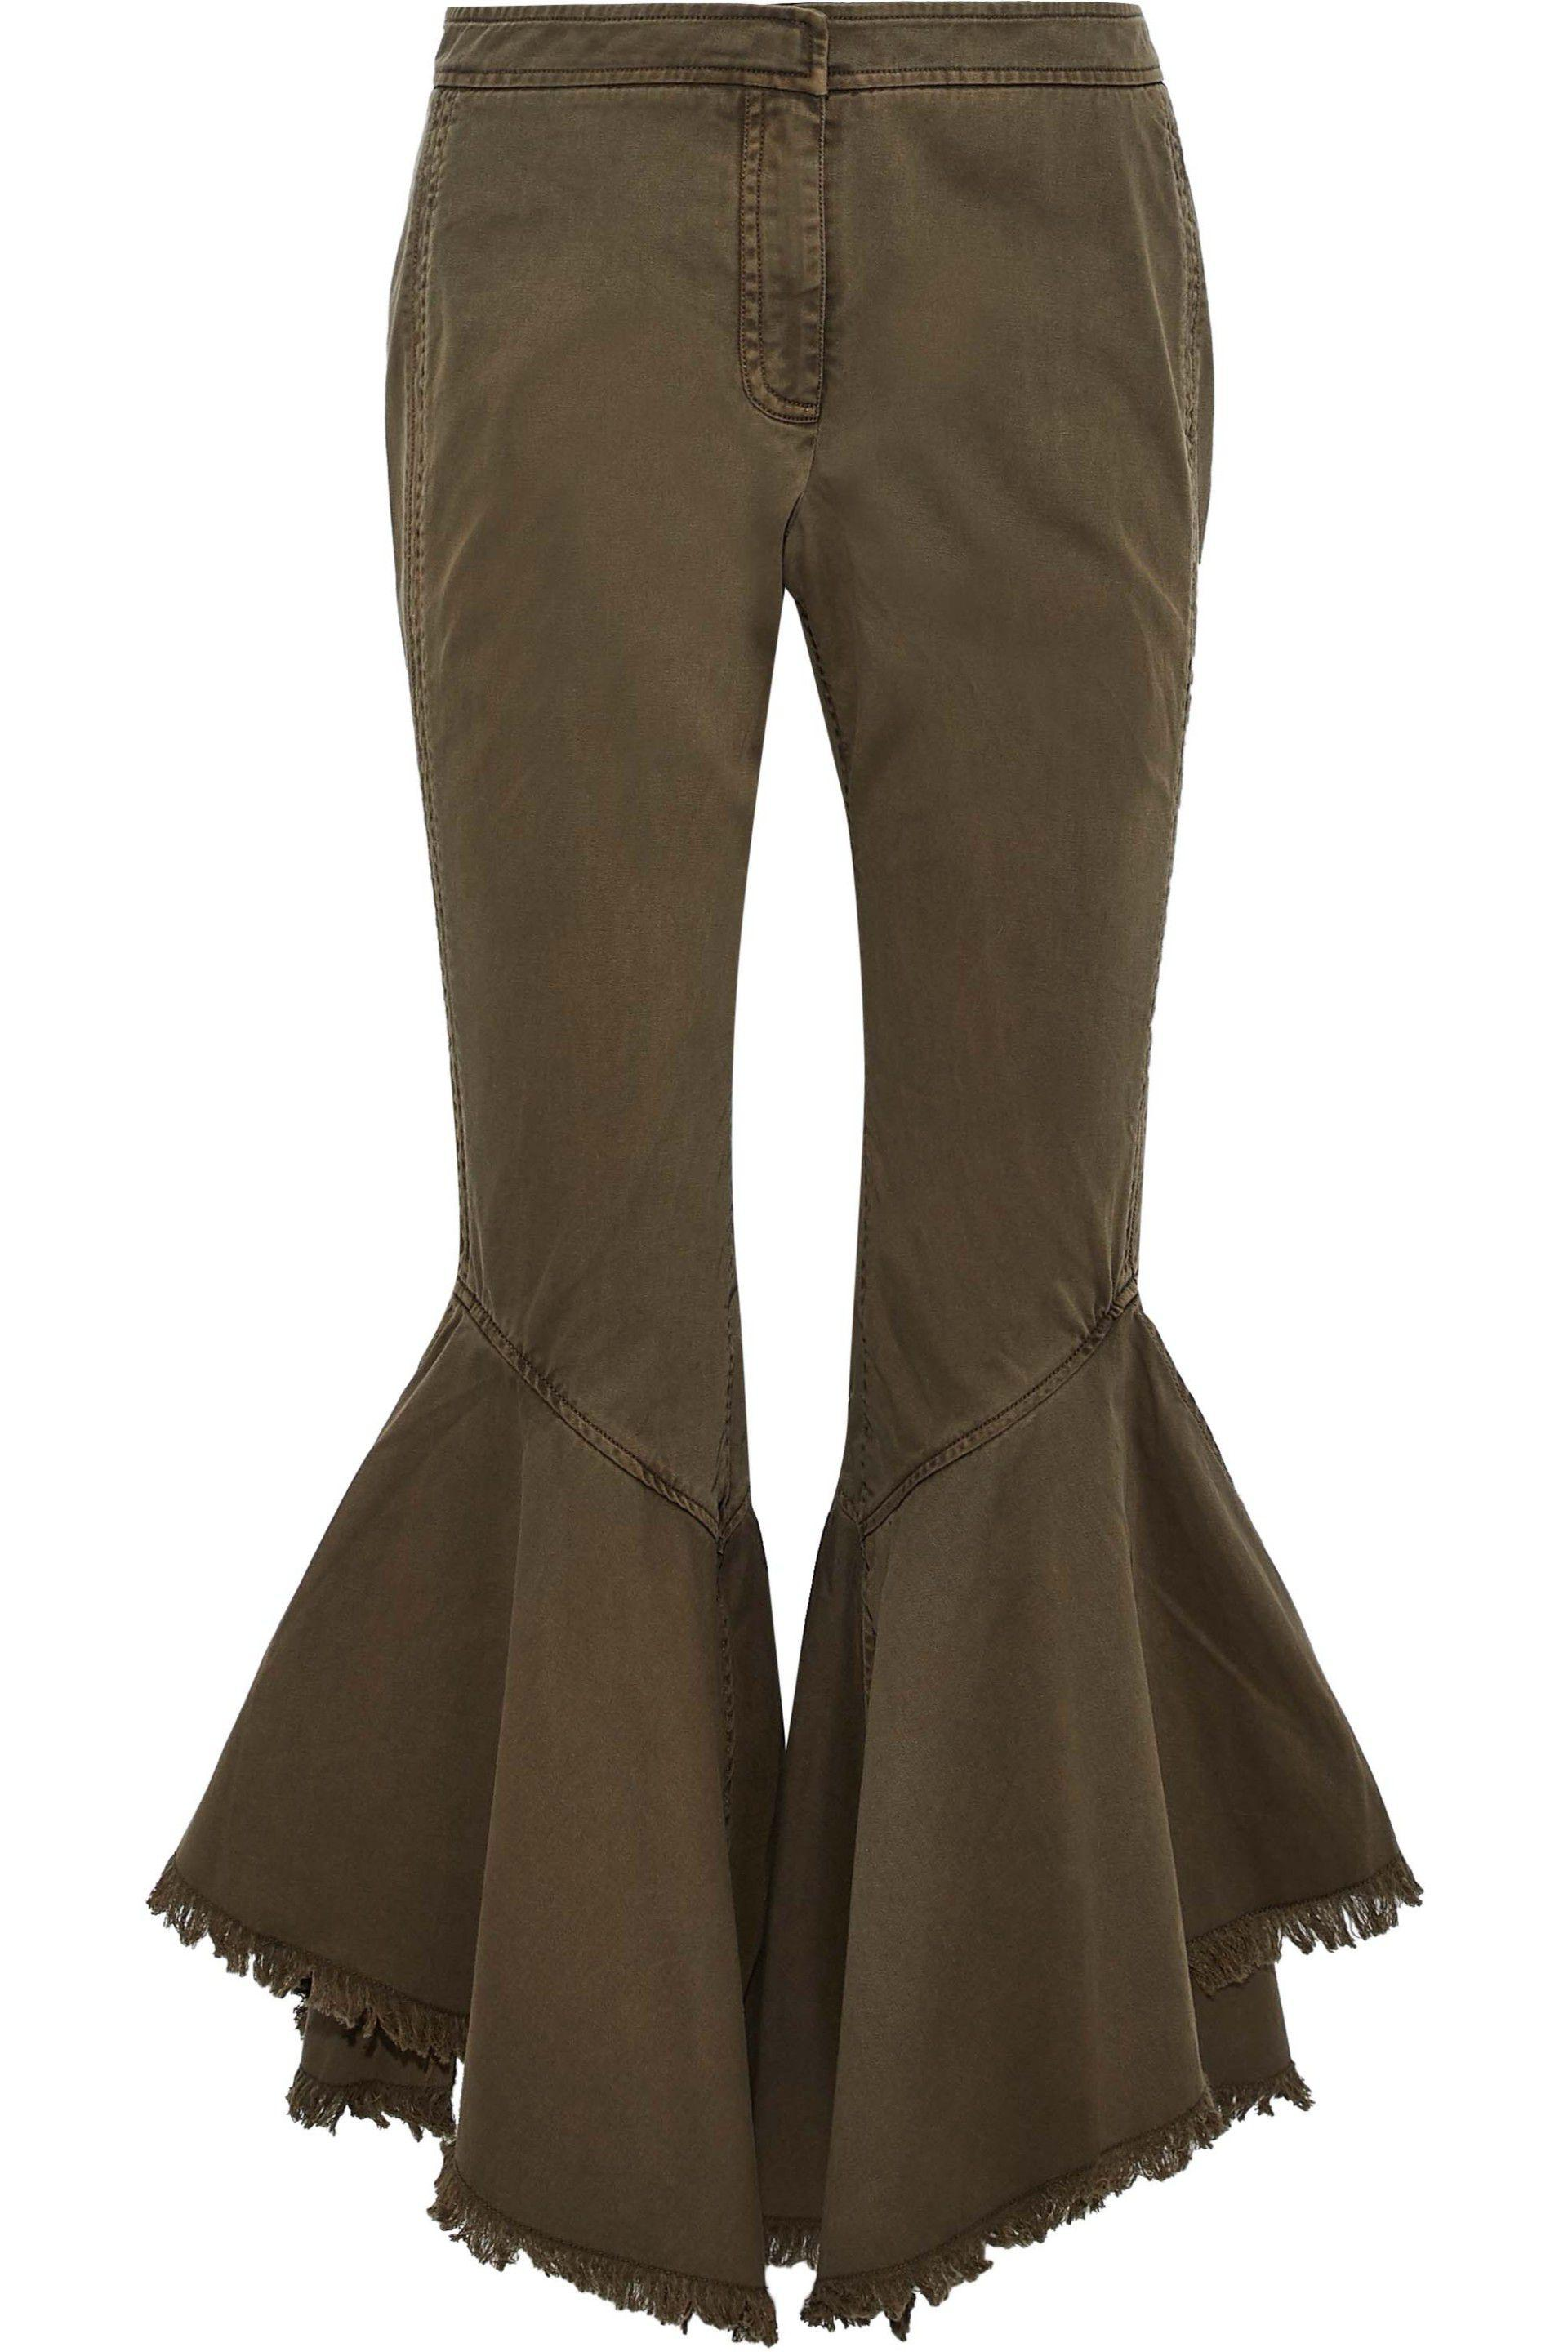 For Sale Top Quality Cinq À Sept Woman Wysteria Frayed Cotton-twill Kick-flare Pants Army Green Size 2 Cinq à Sept Fashionable For Sale Affordable Sale Online New Online jWdOEcuKV